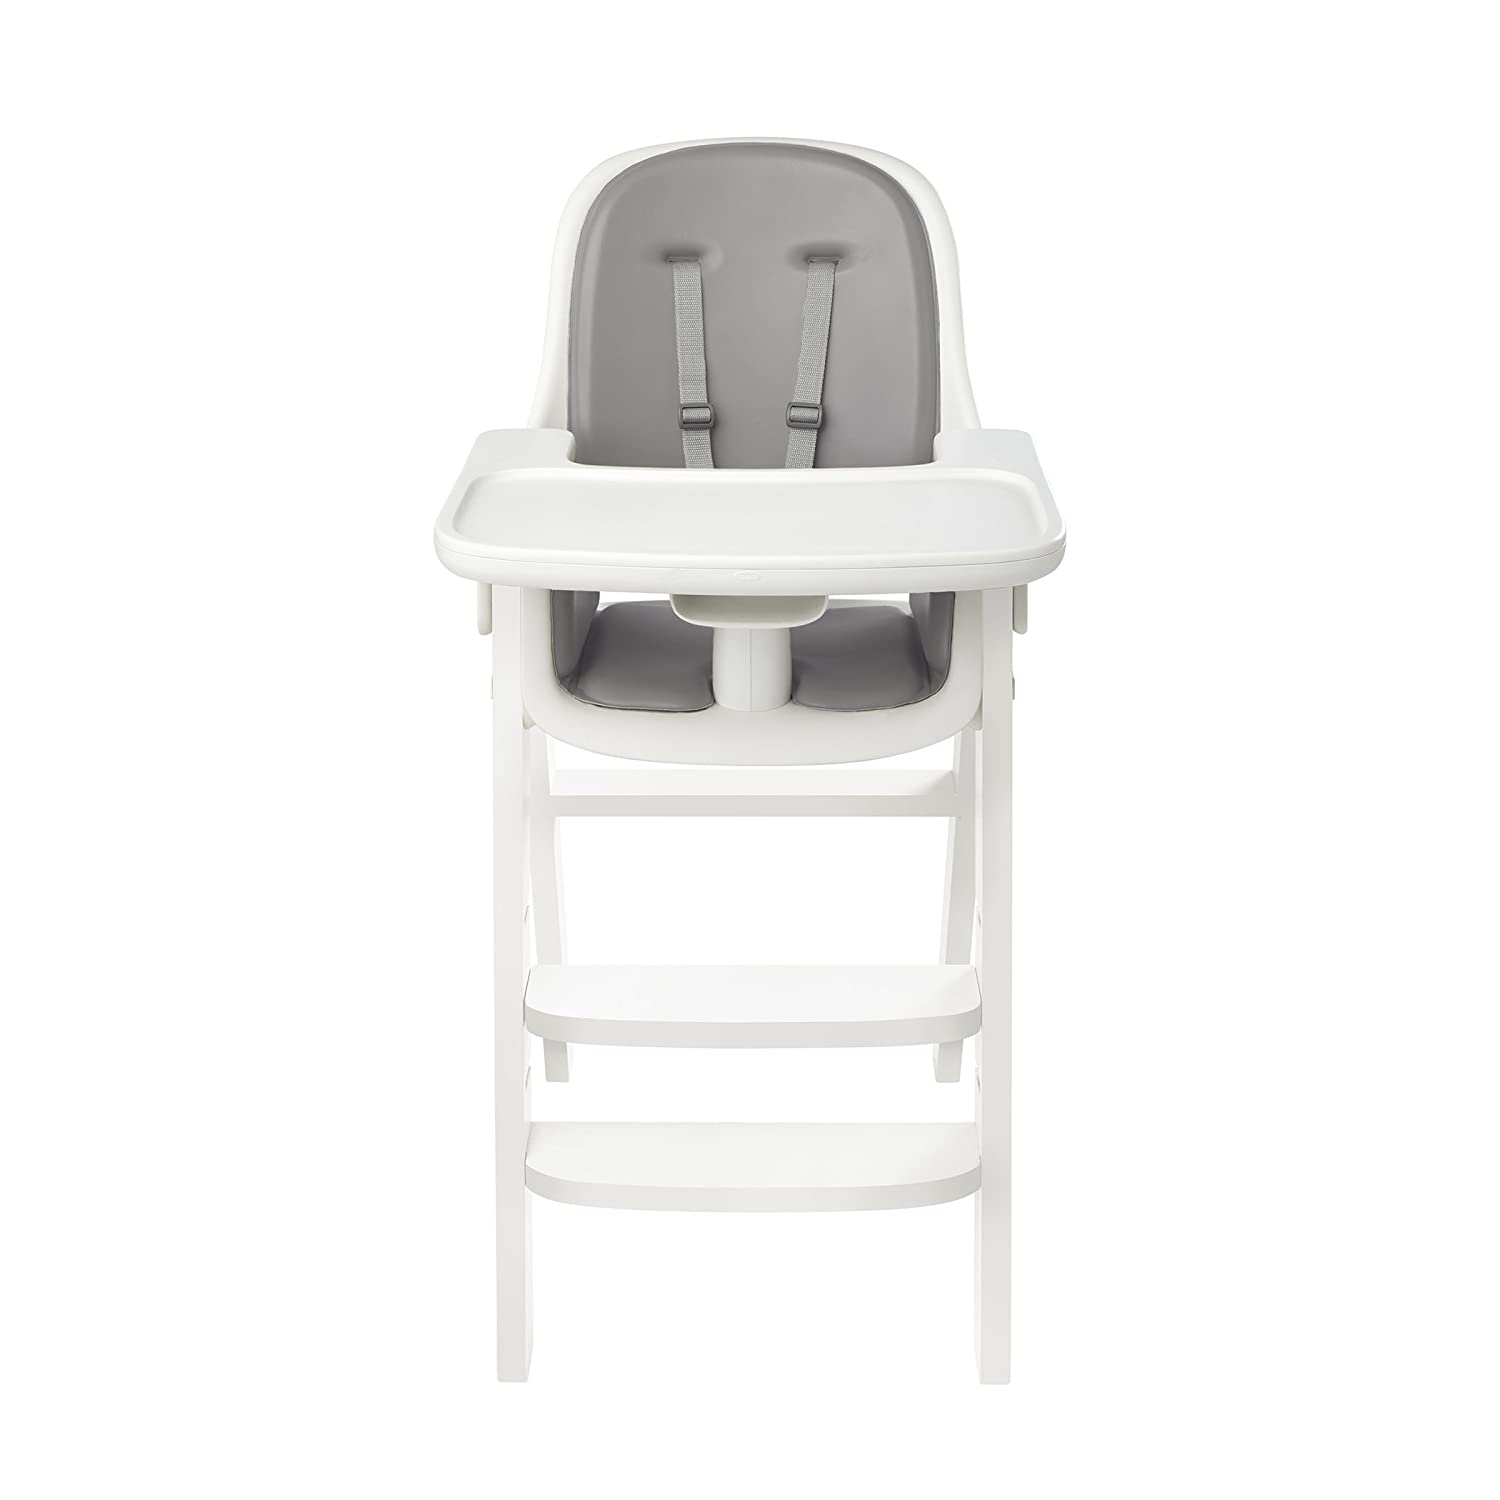 OXO Tot Sprout Chair - Gray/White